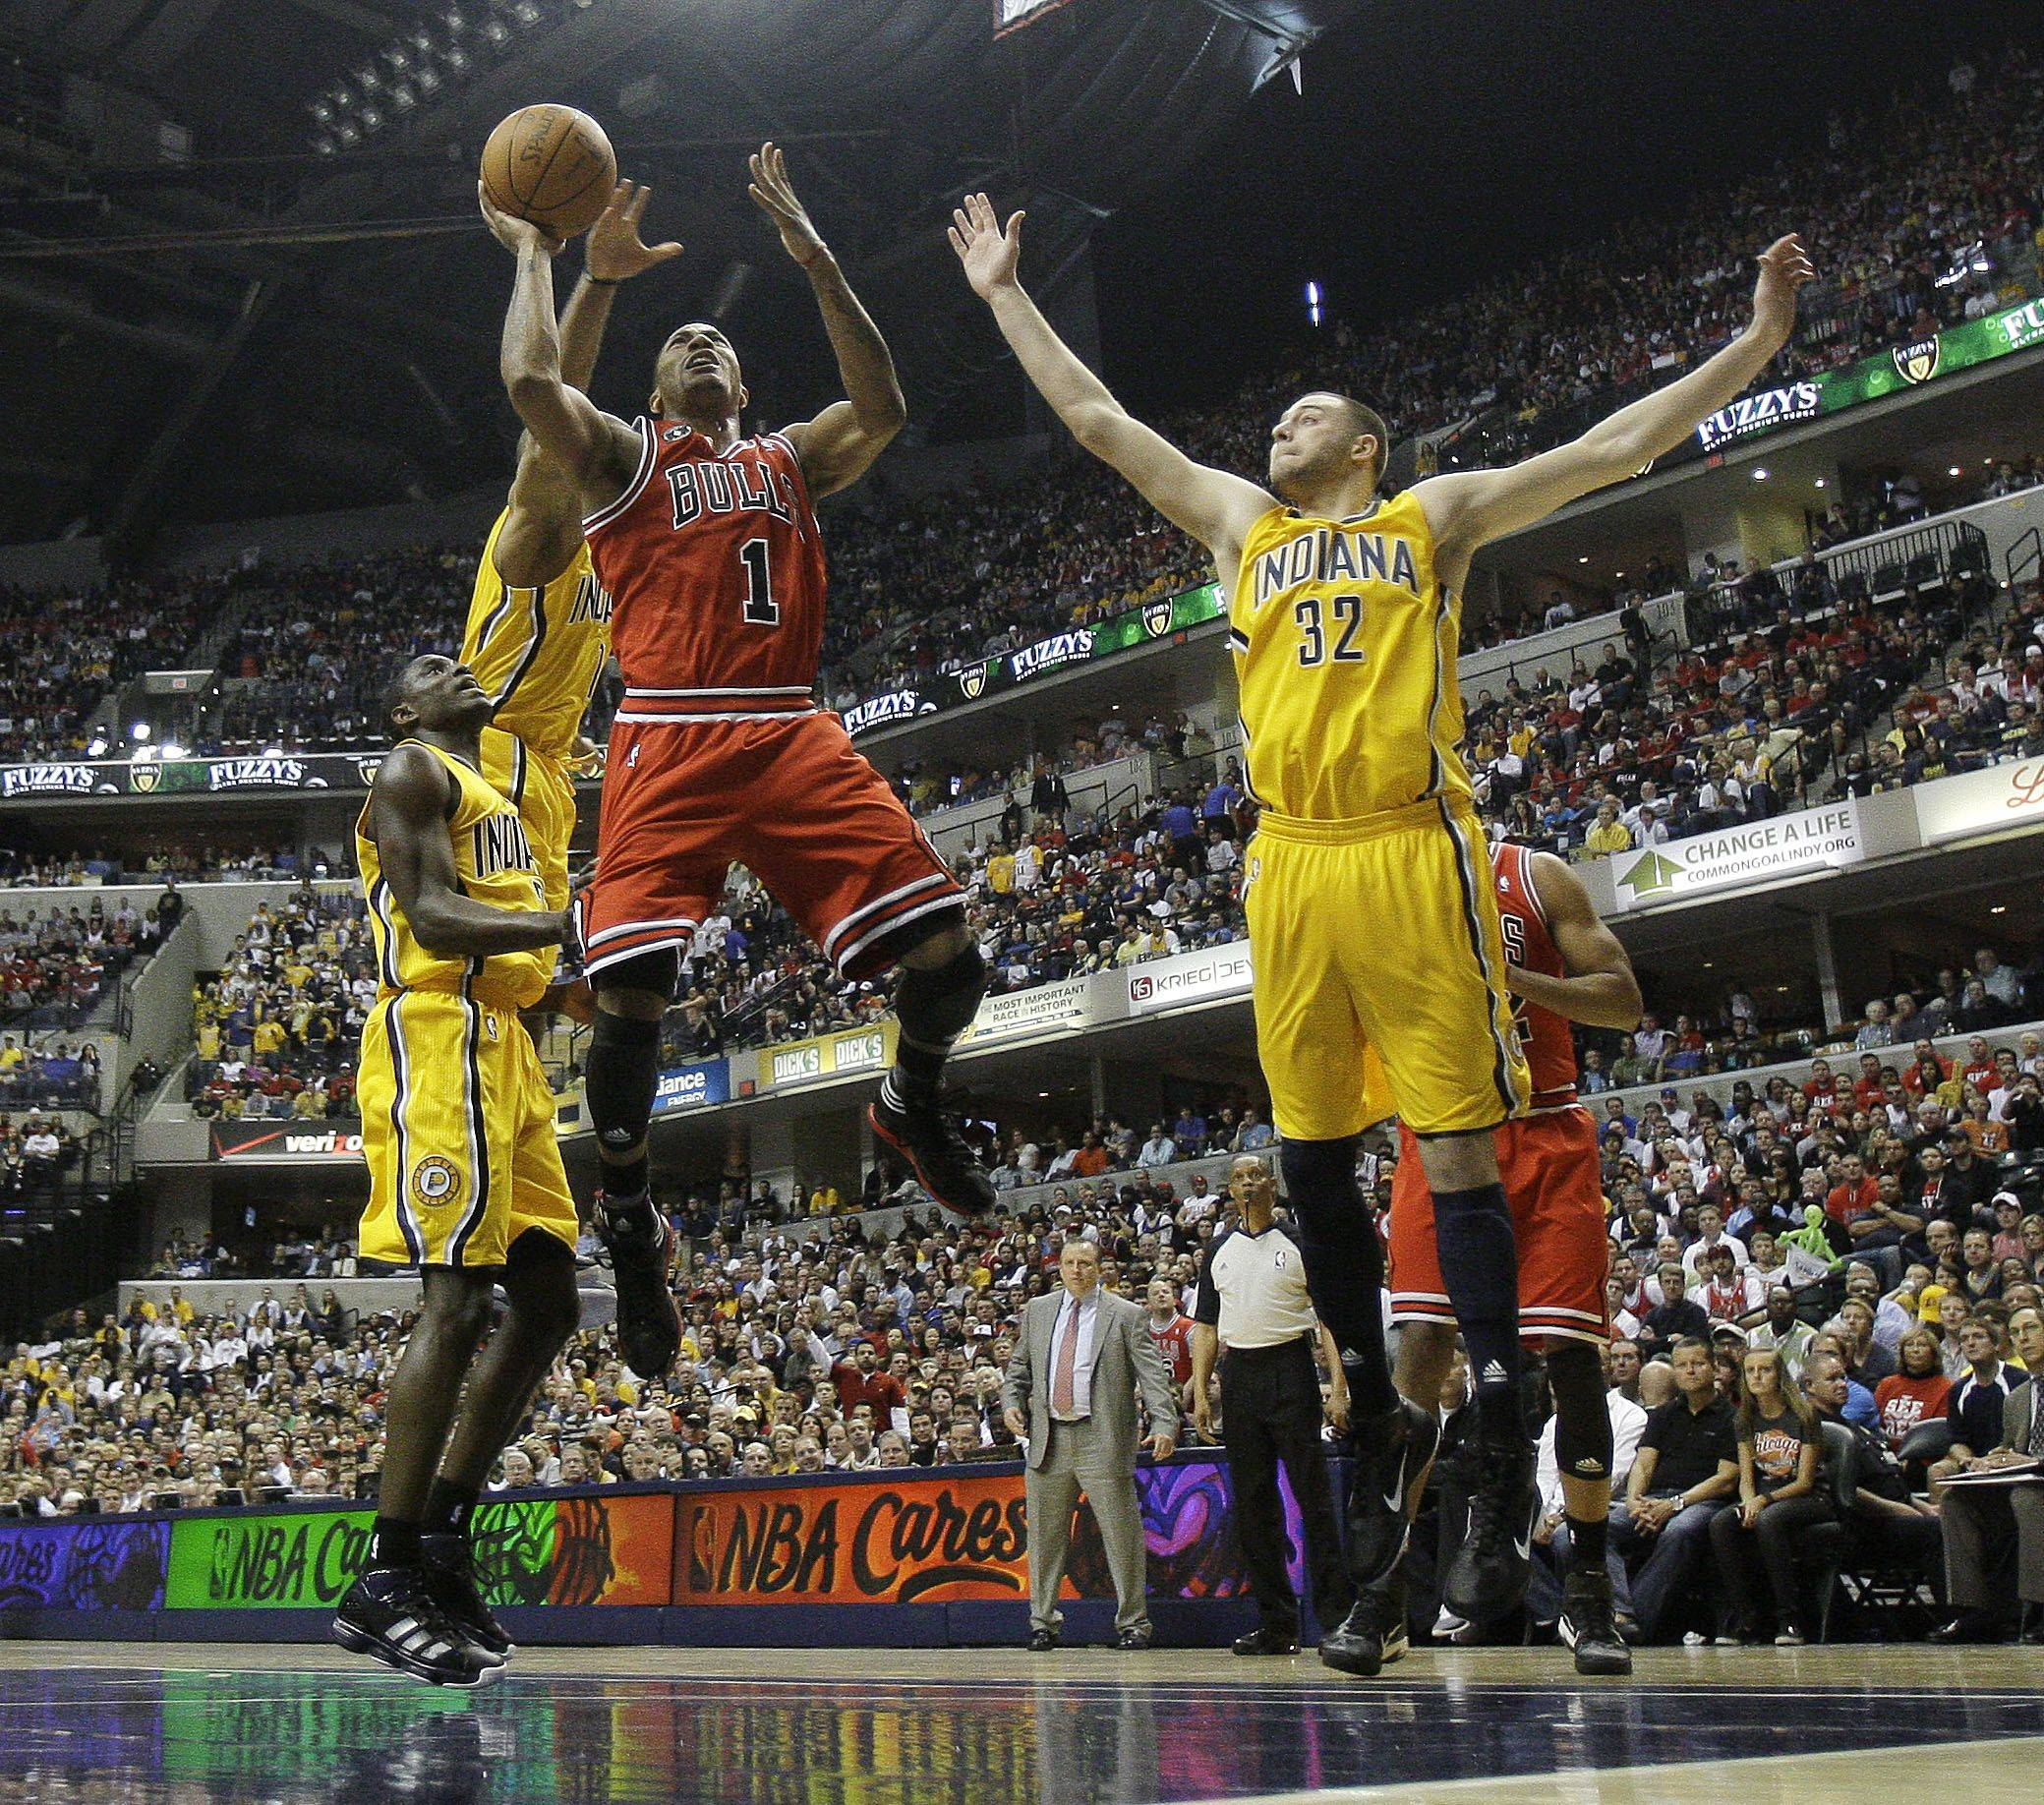 Chicago Bulls' Derrick Rose (1) puts up a shot against Indiana Pacers' Darren Collison (2) and Josh McRoberts (32) during the first half of Game 4 of a first-round NBA basketball series in Indianapolis, Saturday, April 23, 2011.